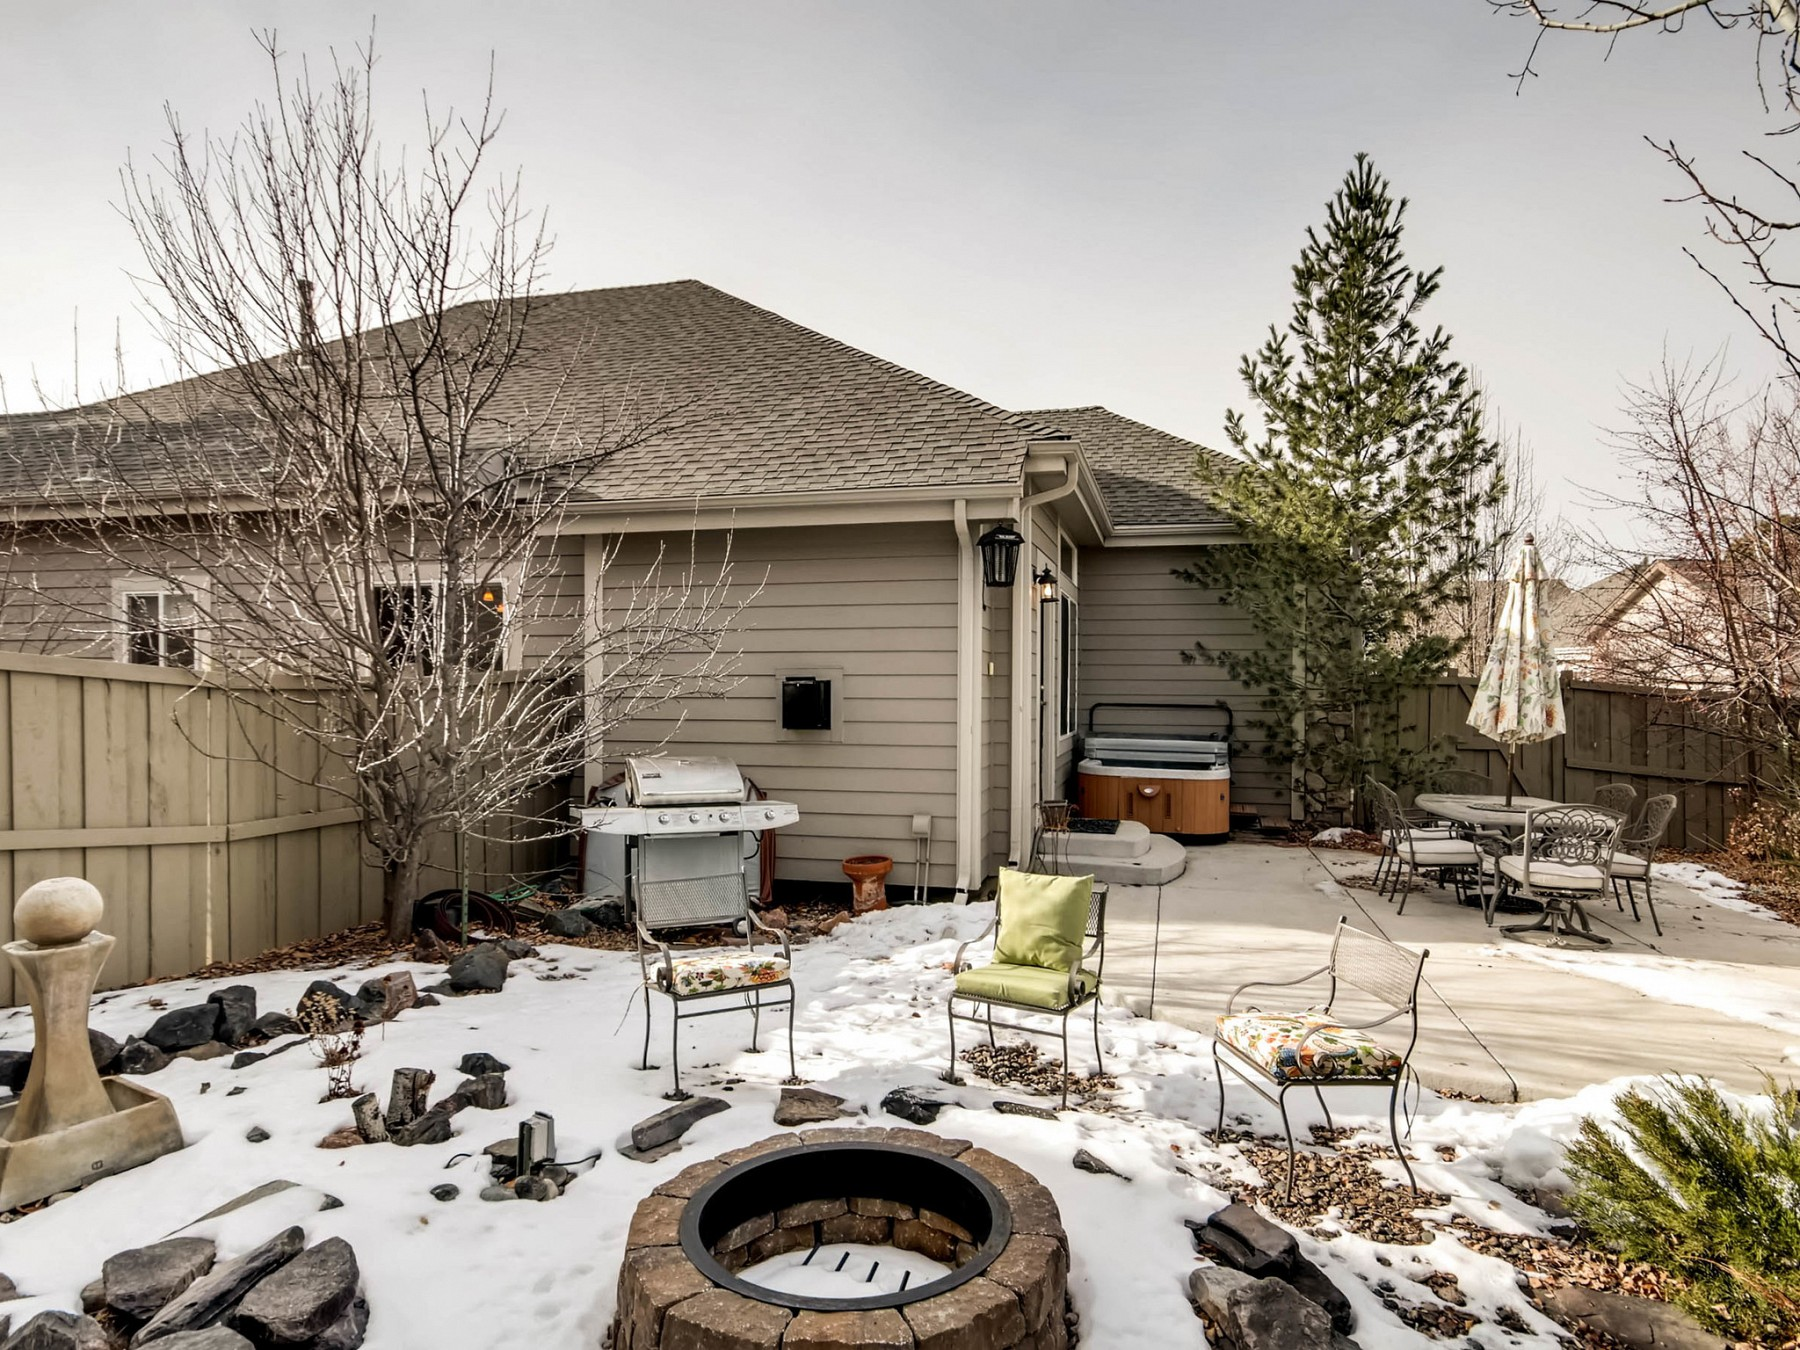 6900 West Grant Ranch Boulevard #68, Littleton, CO 80123